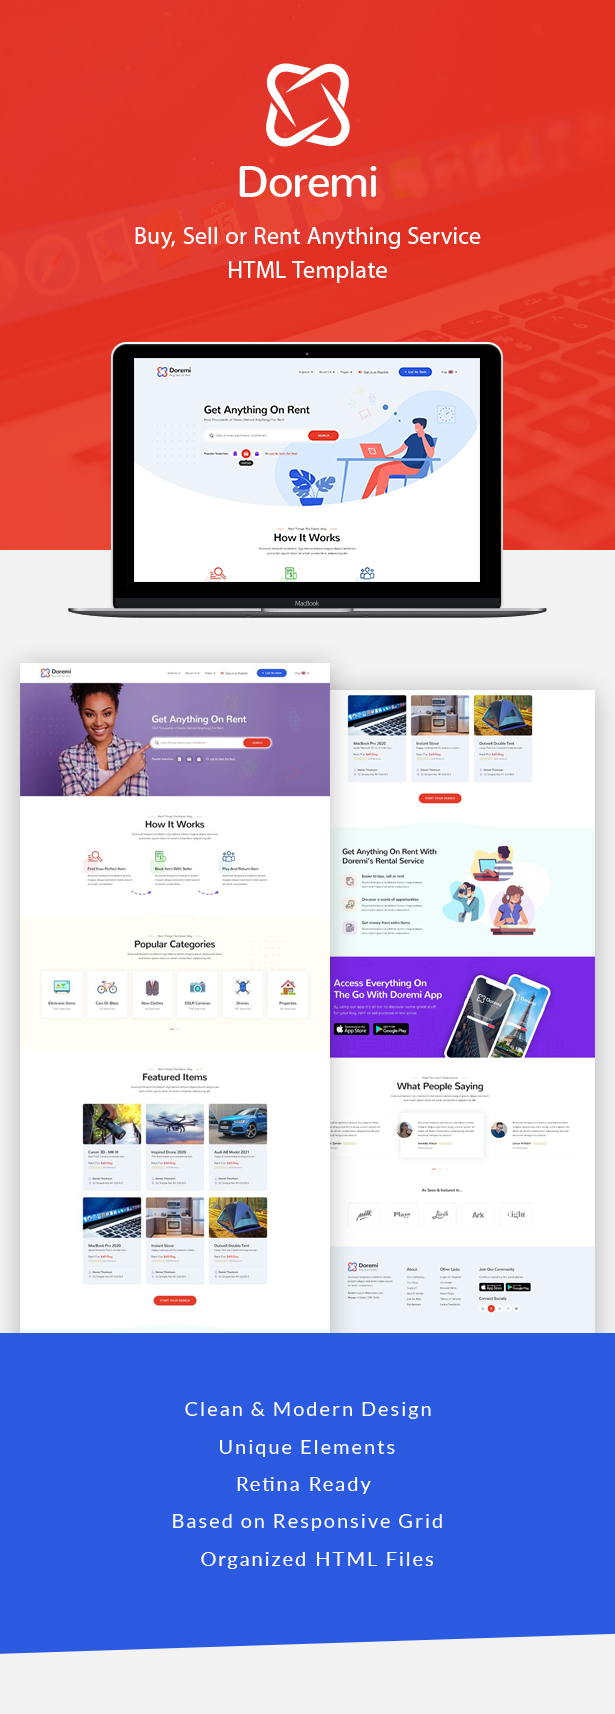 Doremi - Rent Anything HTML Template 1.0